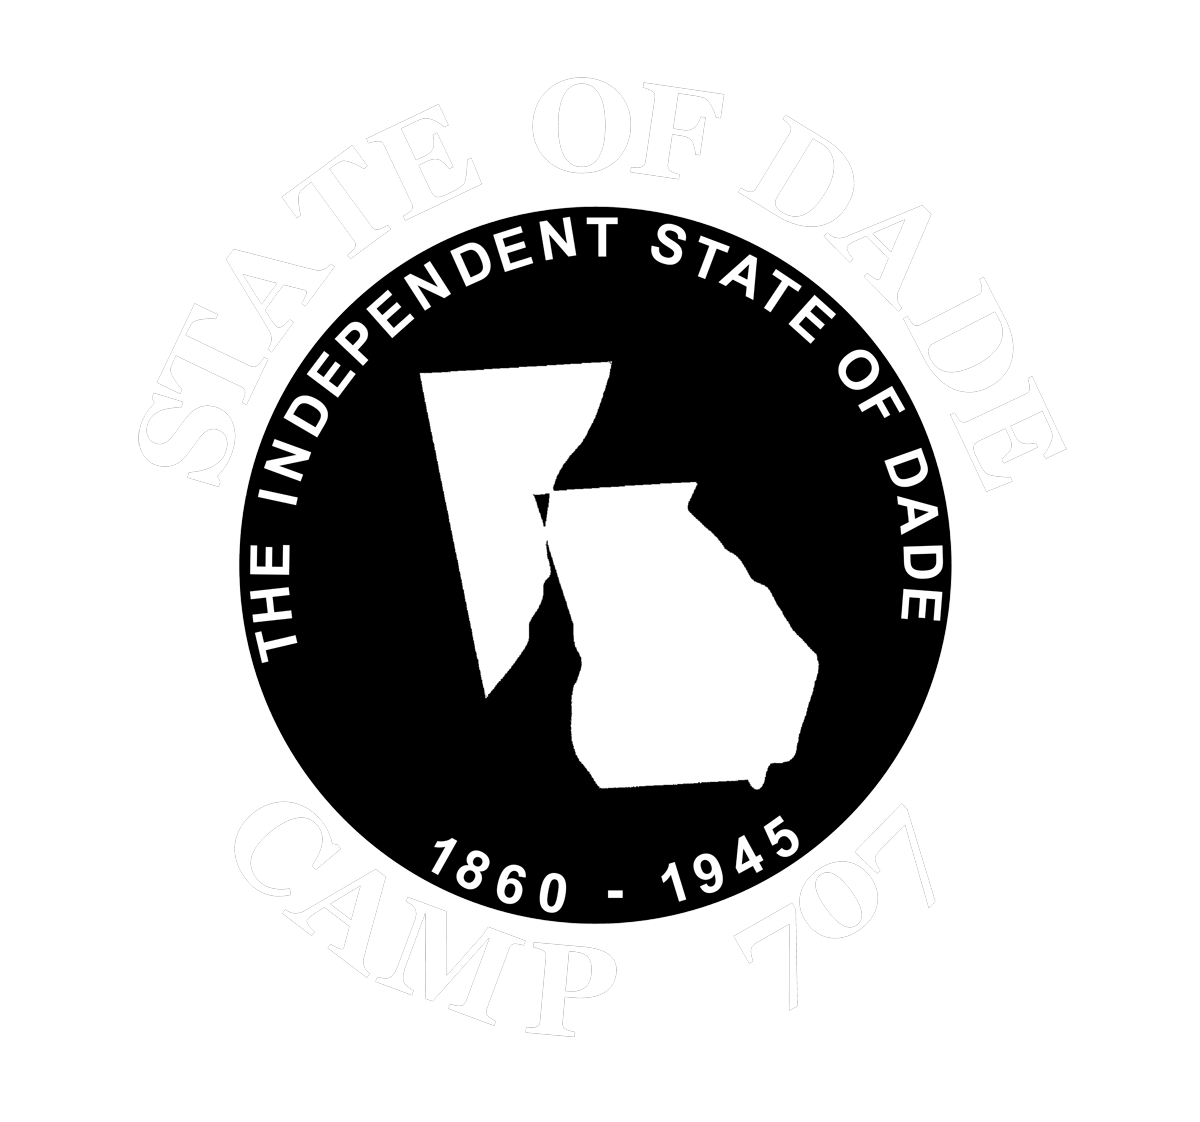 State of Dade Camp 707